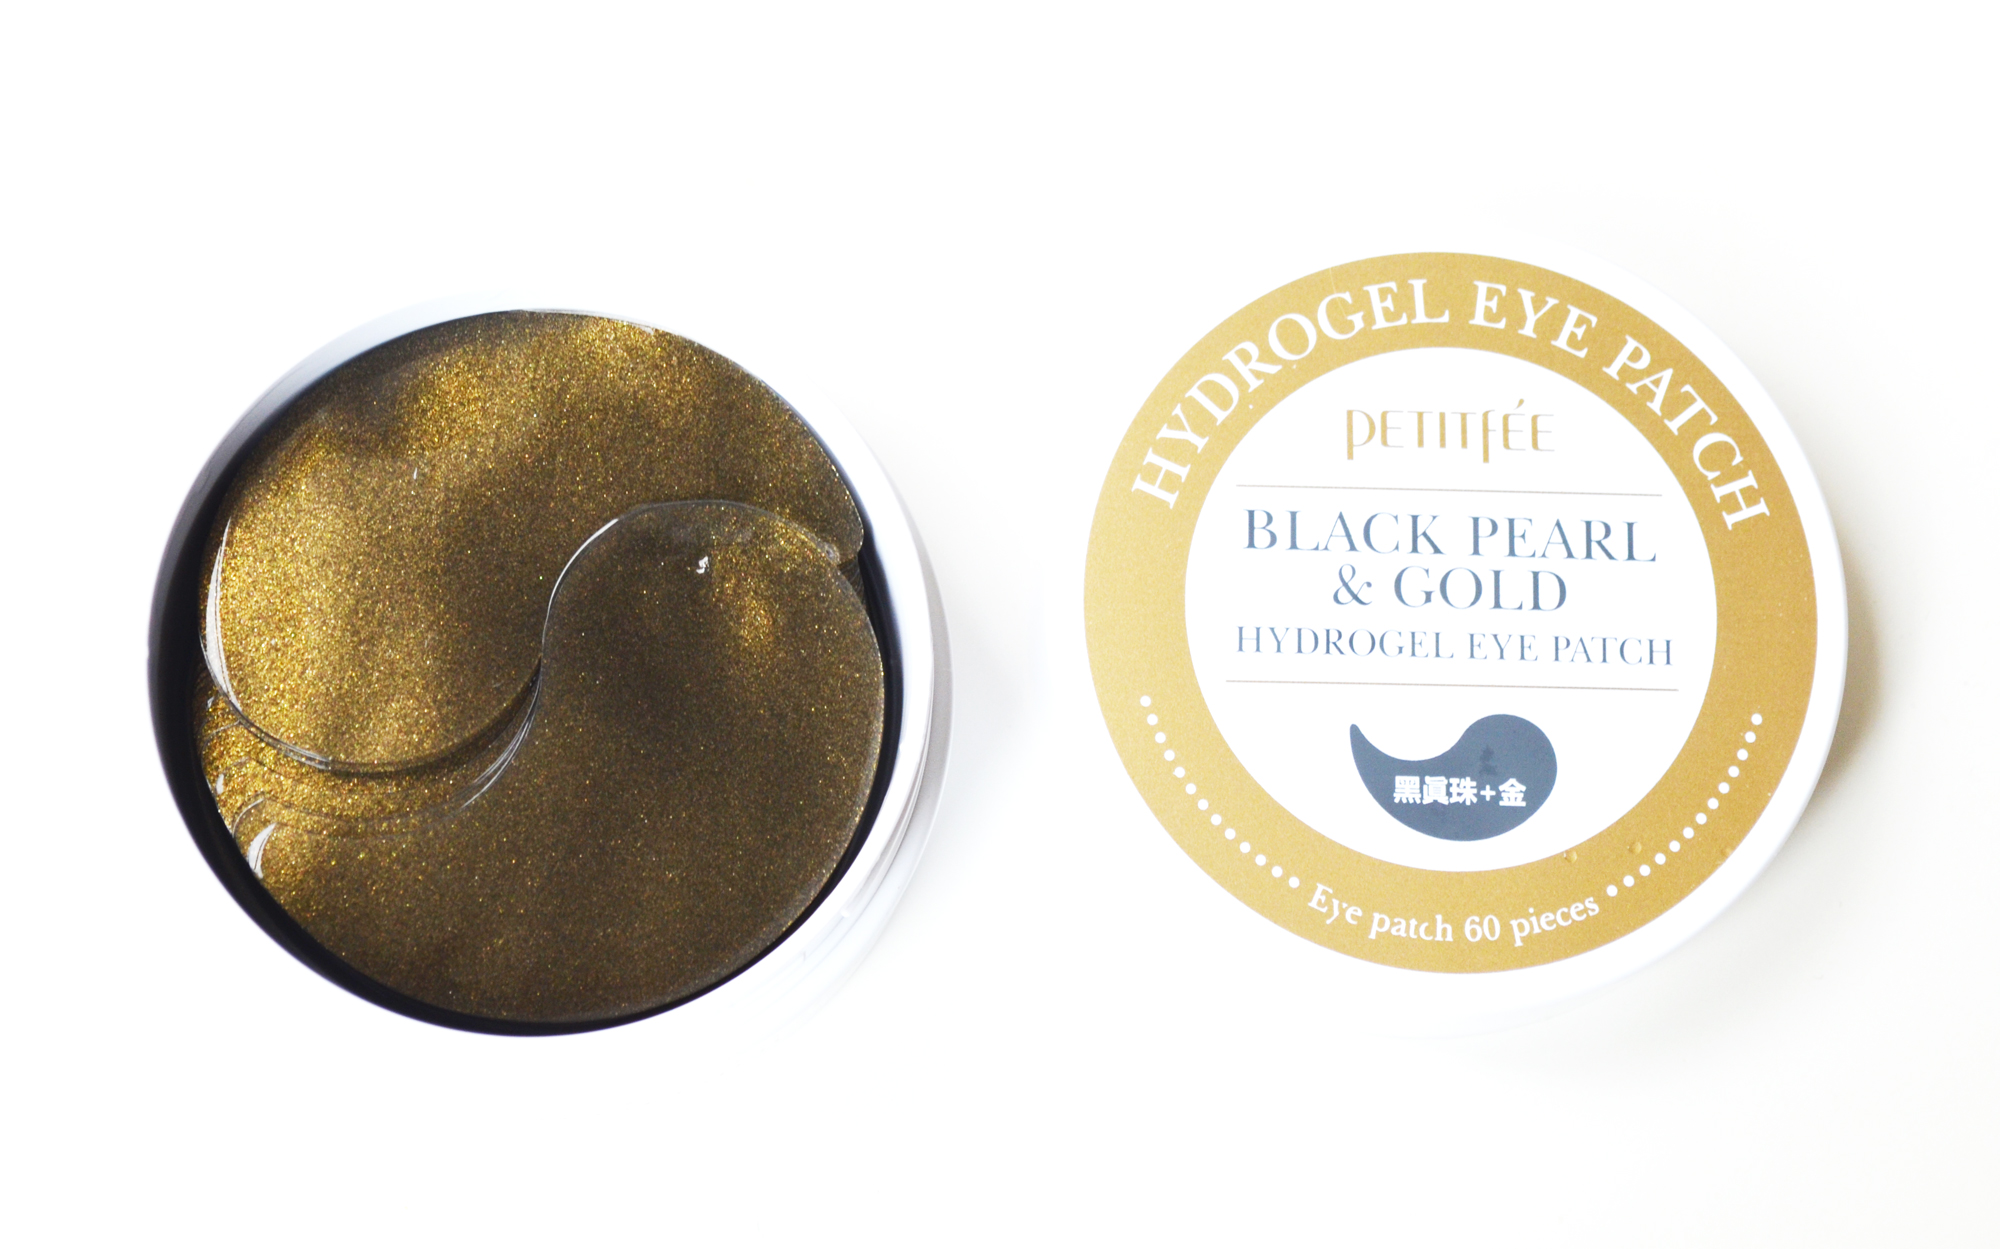 patchs-hydrogel-coreens-contour-des-yeux-petitfee-black-pearl-and-gold-hydrogel-eye-patch